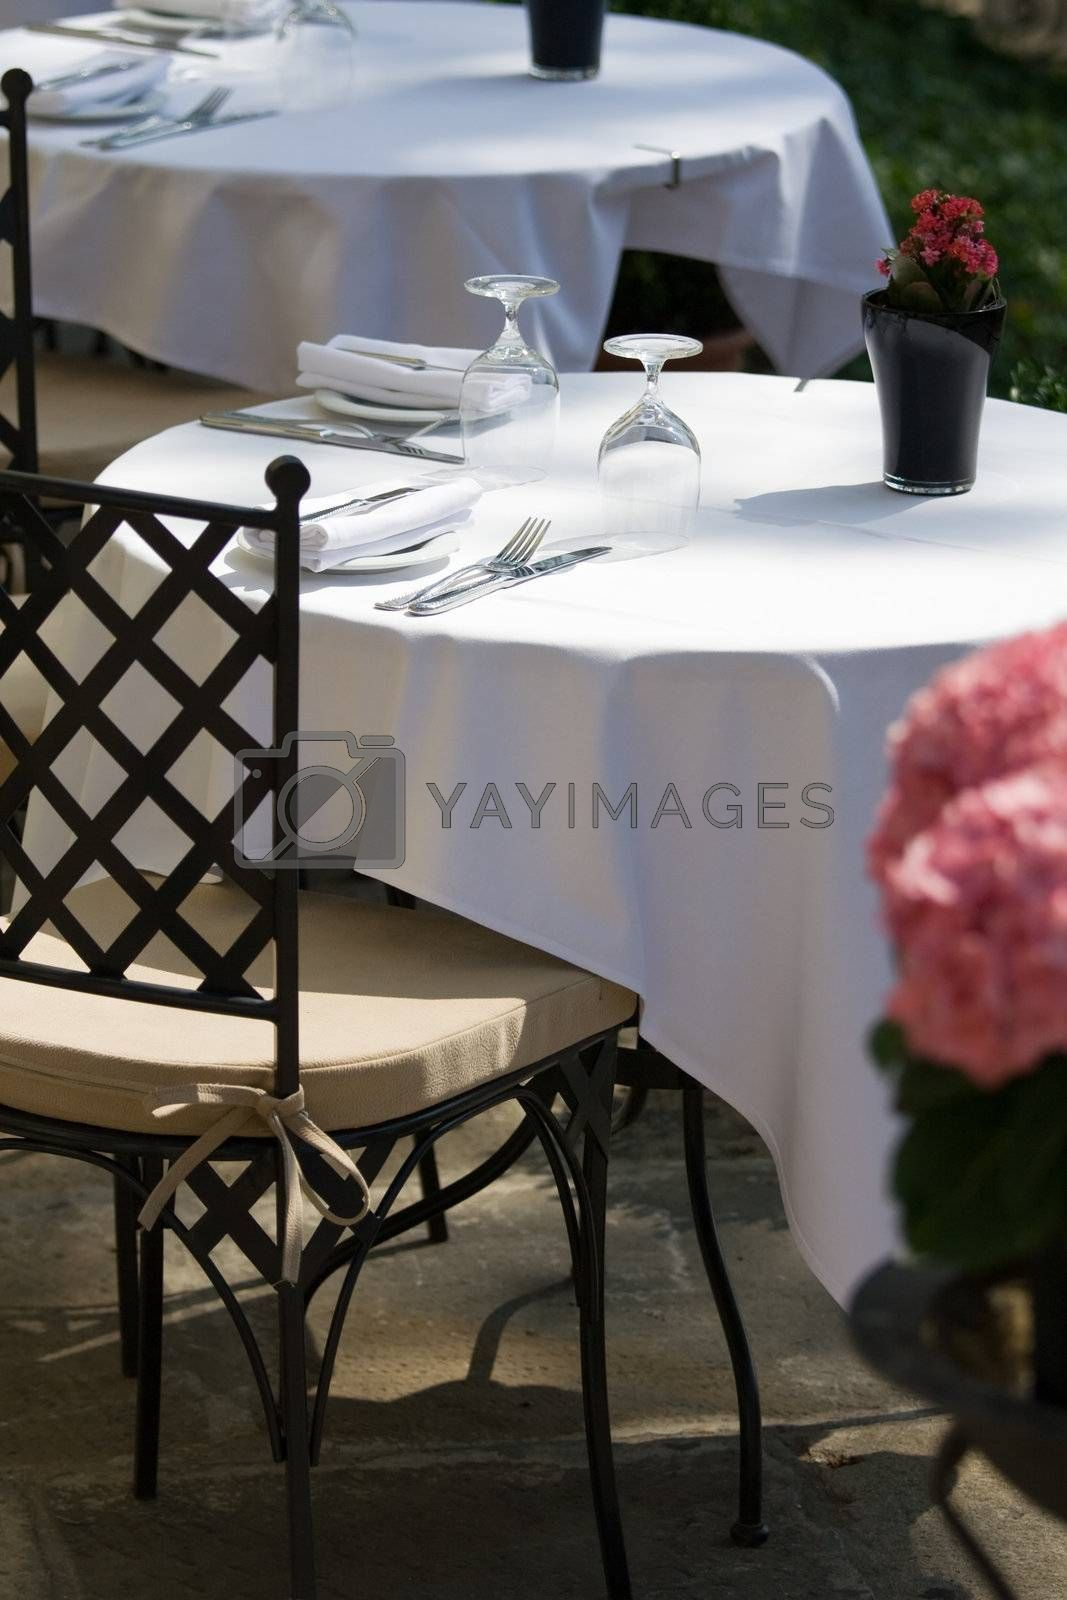 Free table for two at the restaurant by SergeyAK